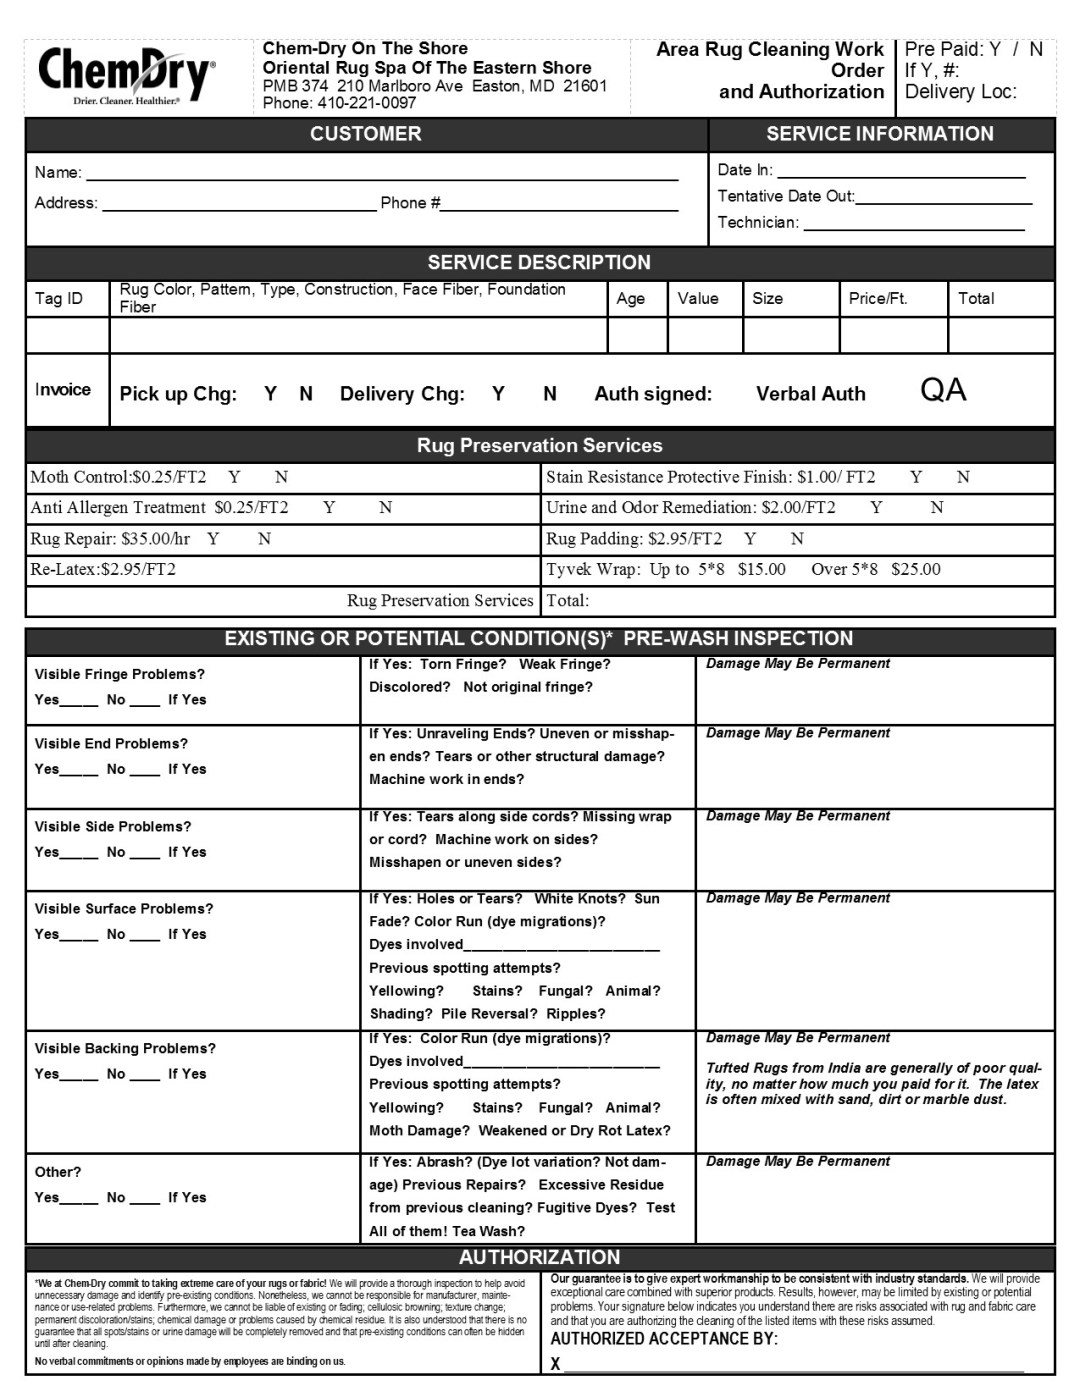 Rug Cleaning Inspection Form